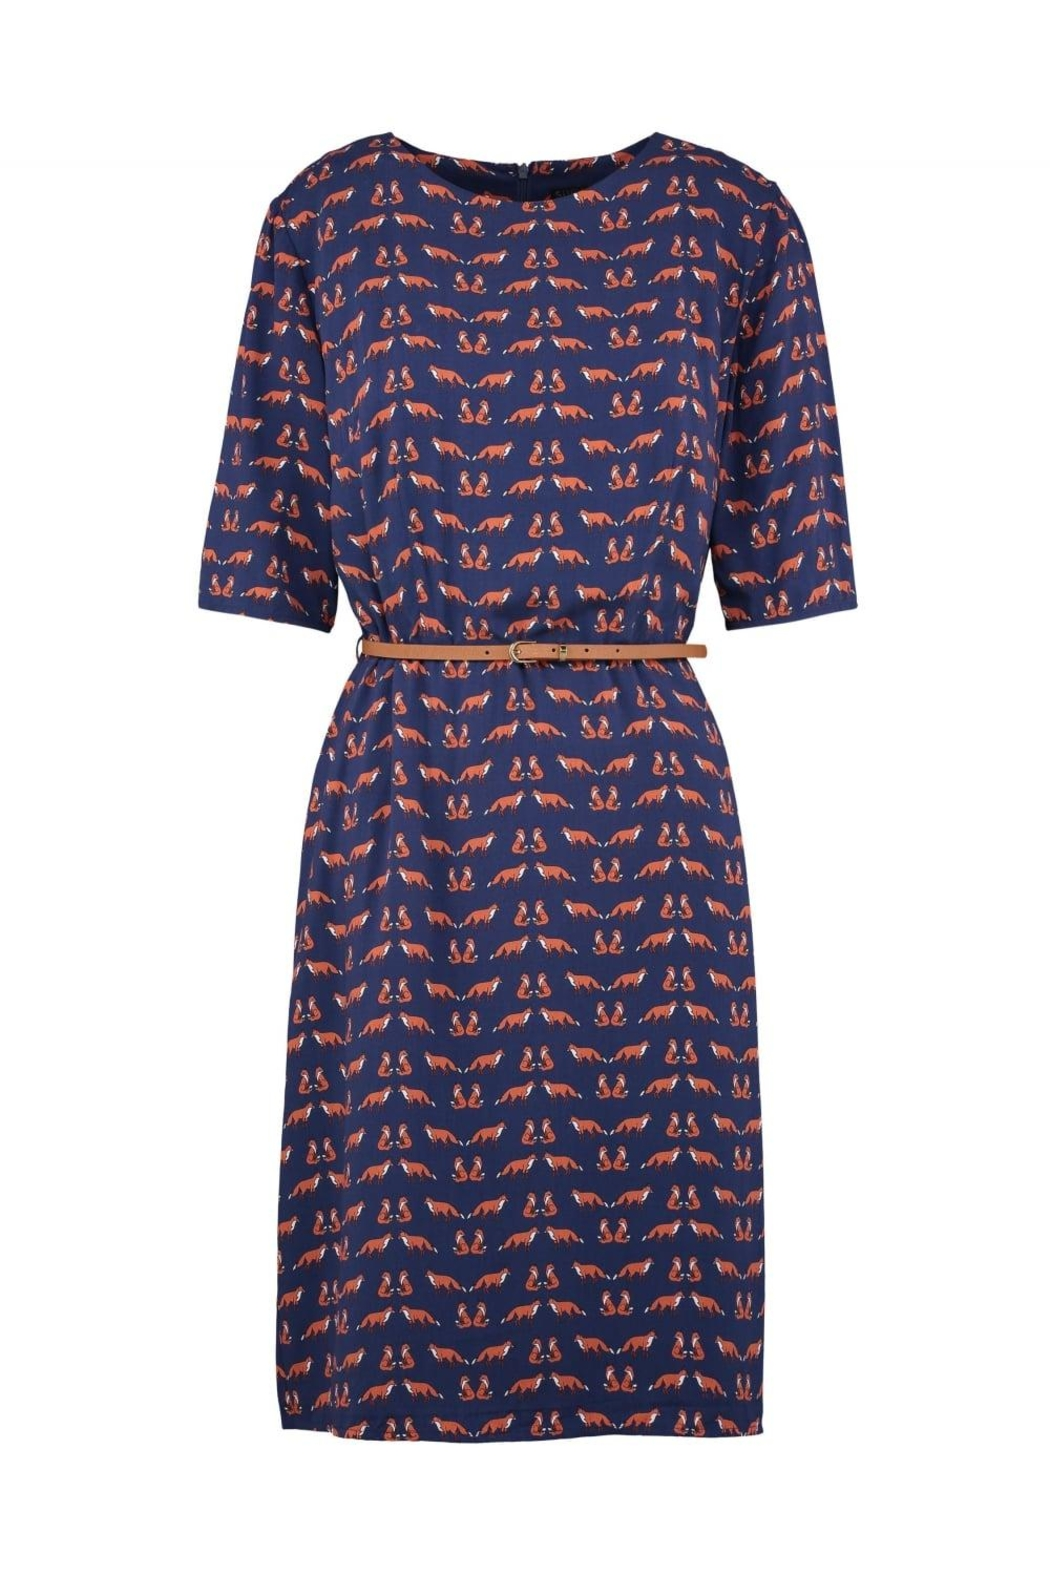 Sugarhill Boutique Fox Skater Dress - Main Image